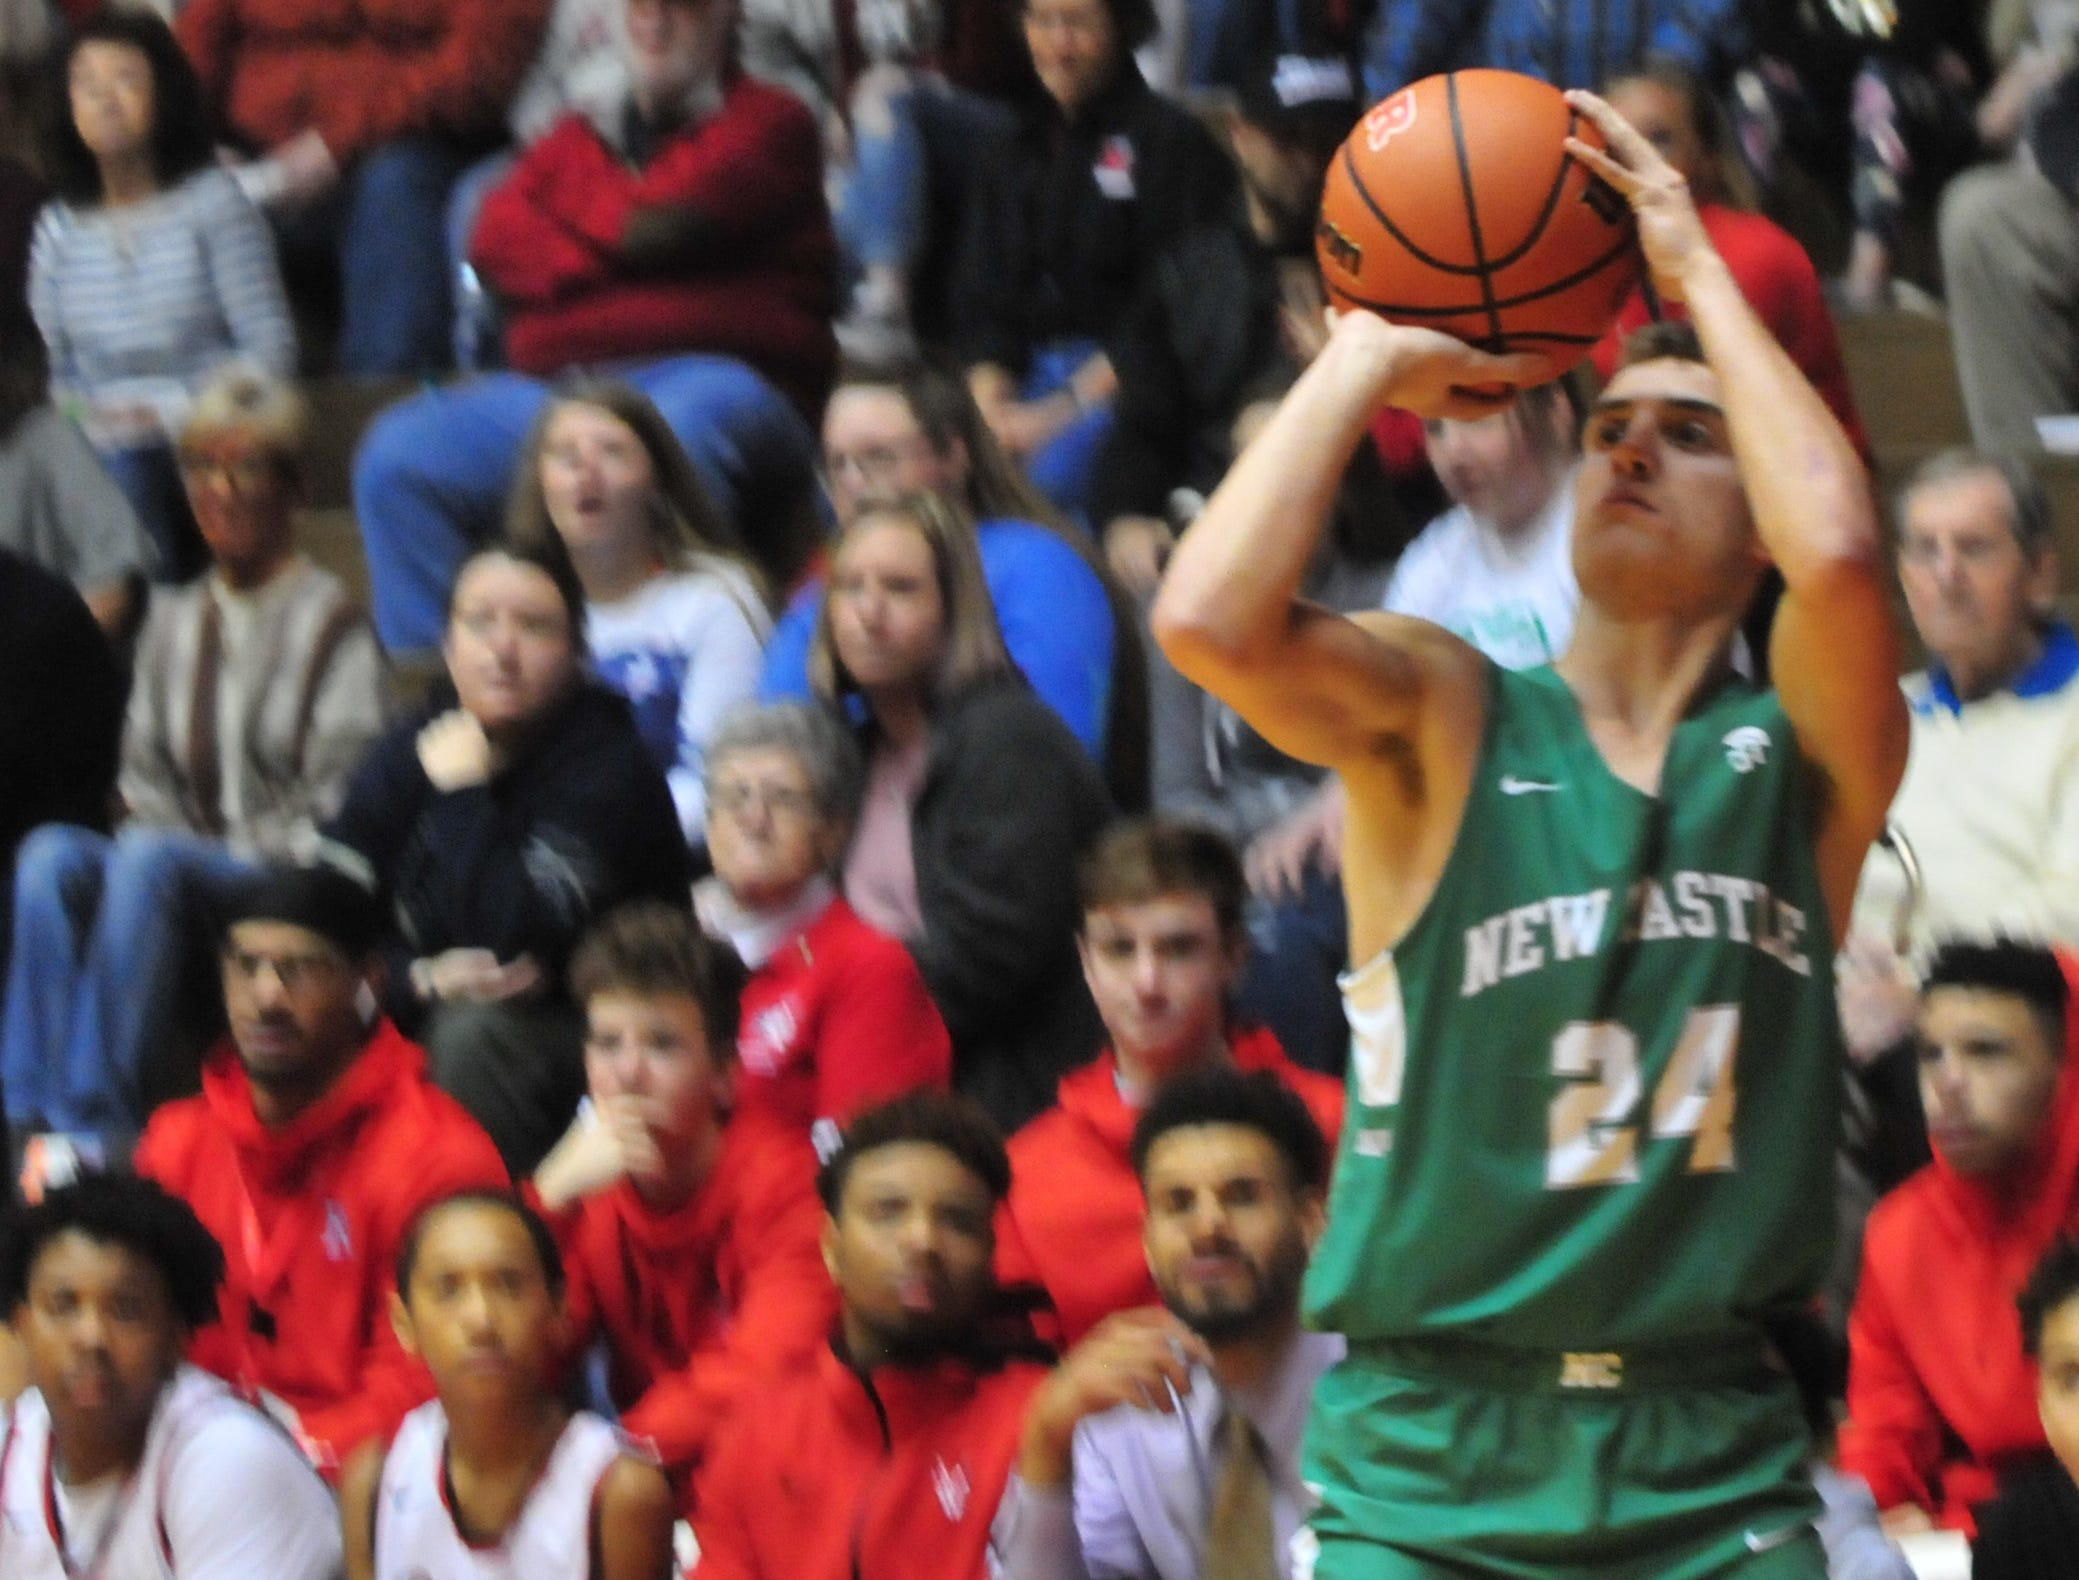 New Castle senior Nicholas Grieser shoots a 3-pointer during a boys basketball game against Richmond at Tiernan Center Friday, Jan. 4, 2019.